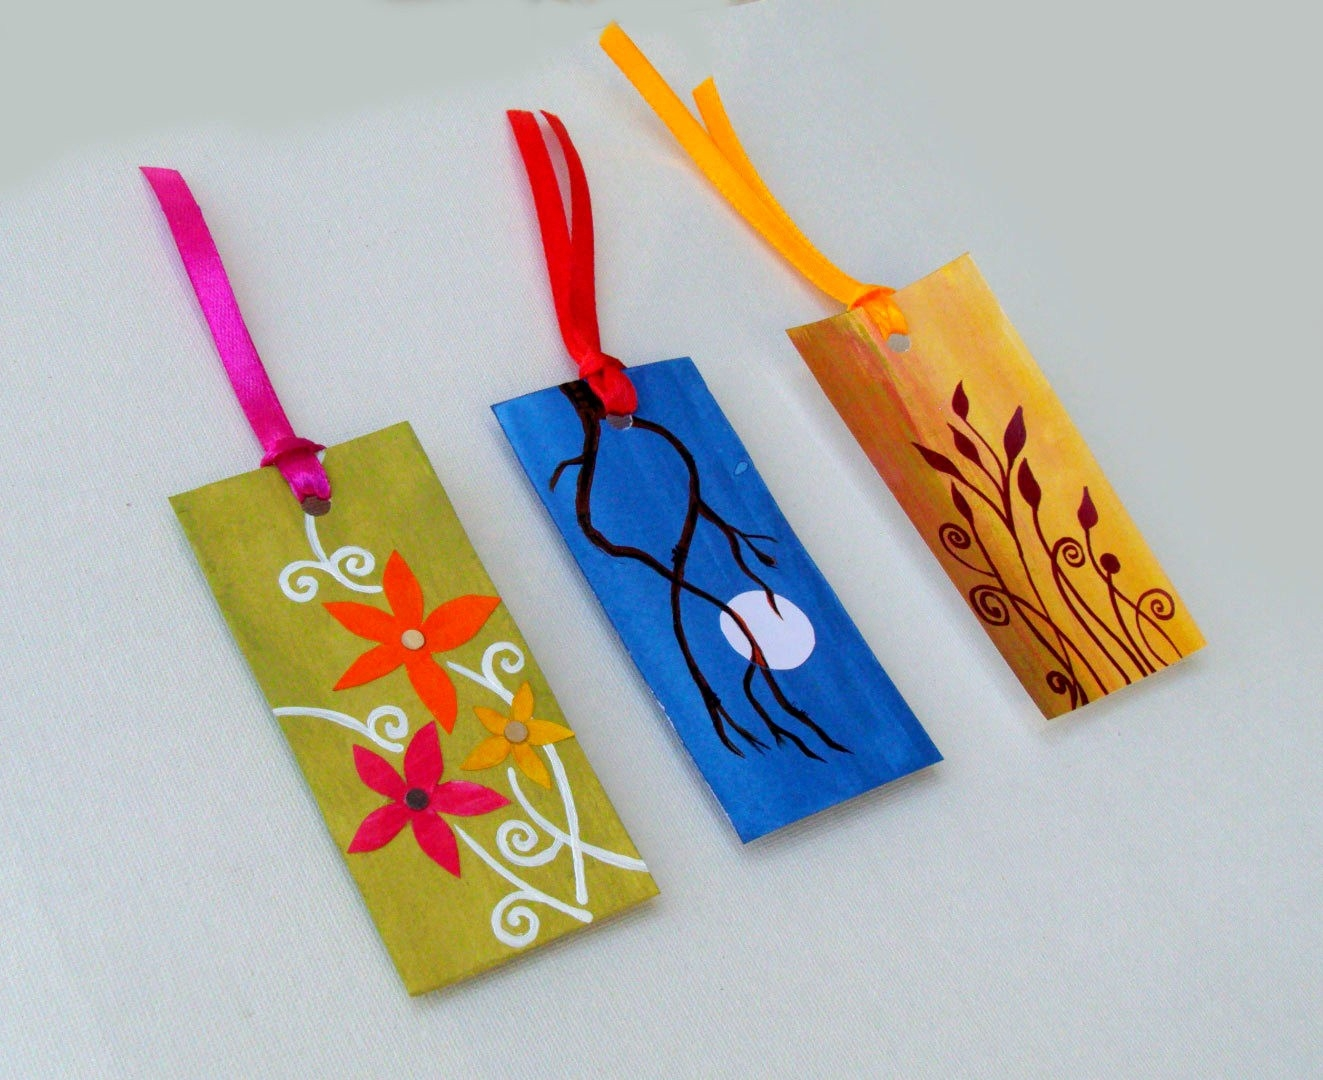 Handmade Bookmarks Gifts India Giftables - Dma Homes | #830 intended for Handmade Bookmarks For Books 29612